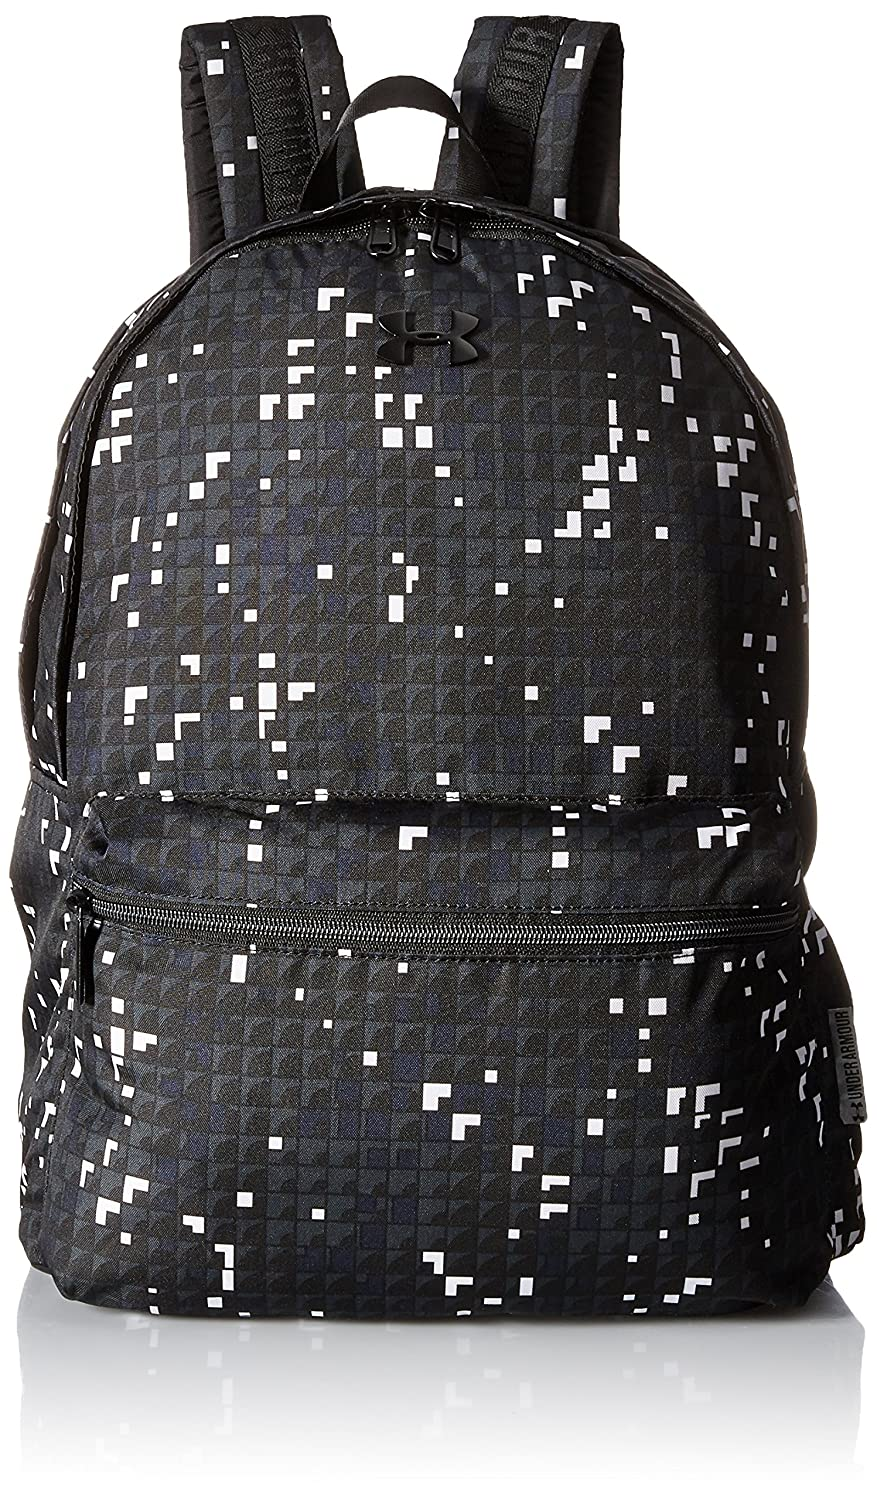 4ba5a049489 Under Armour Women's Favorite Backpack, Black/Stealth Gray, One Size:  Amazon.in: Sports, Fitness & Outdoors